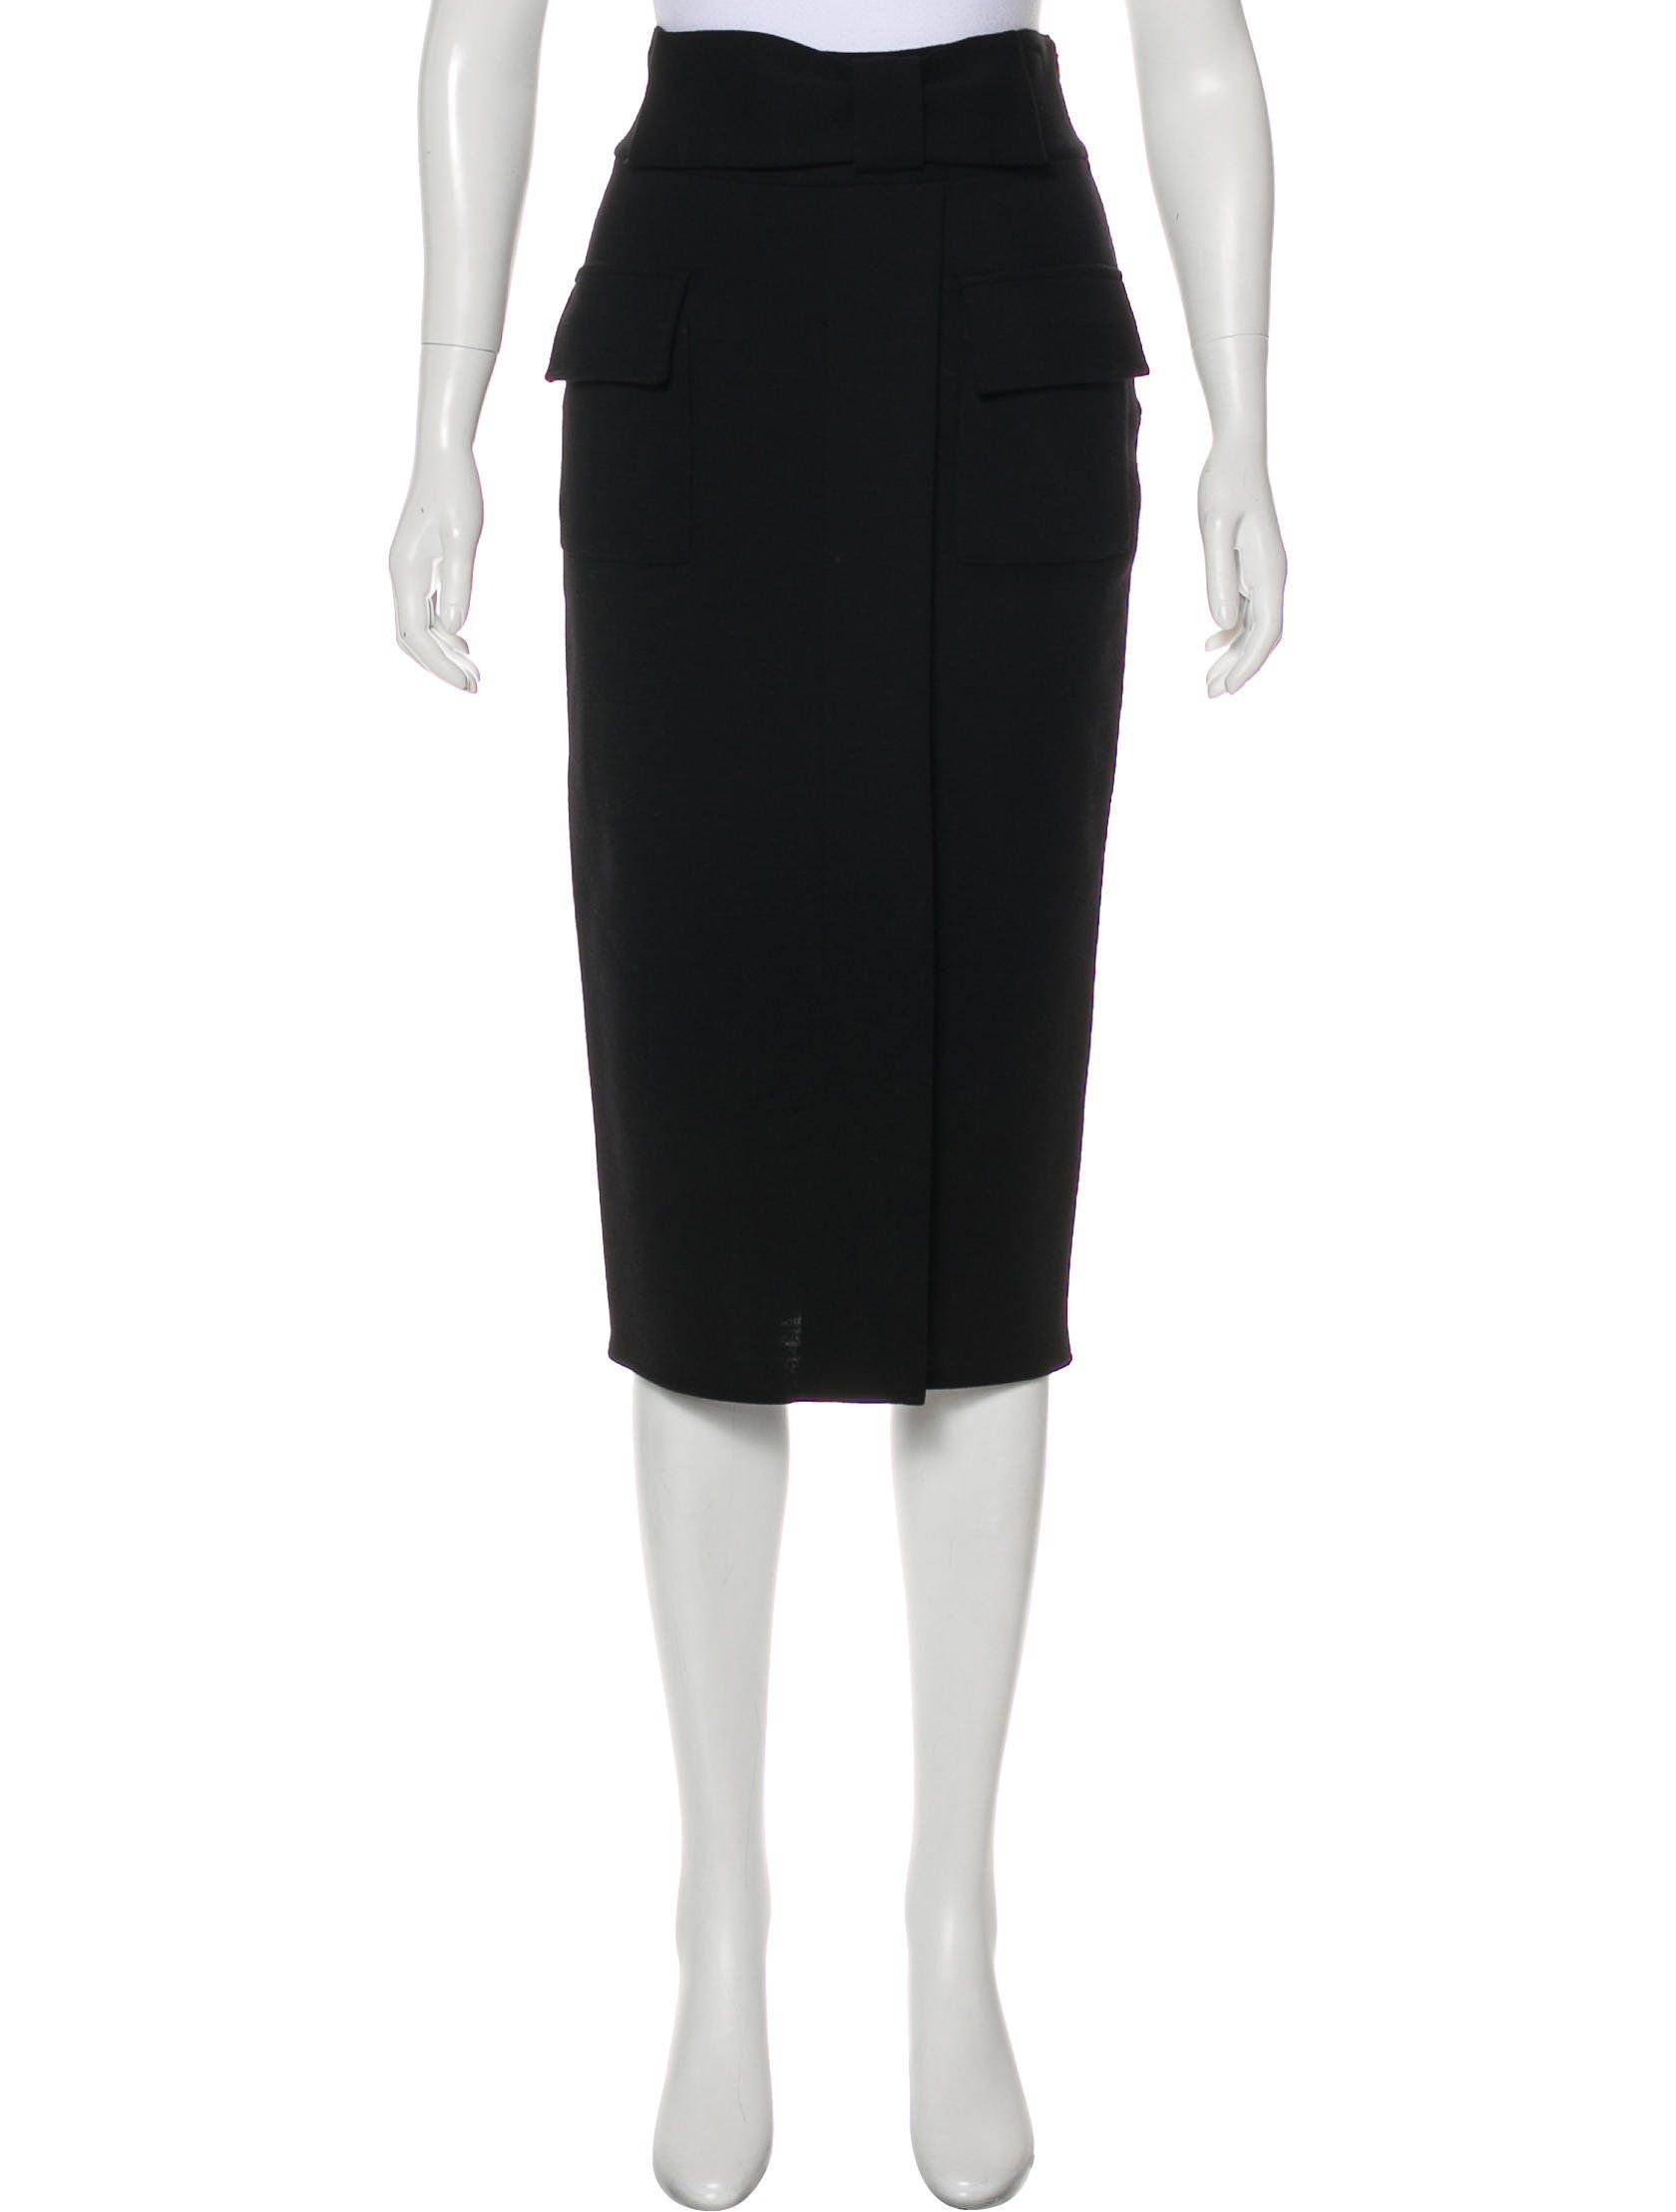 35ea16eae Black Diane von Furstenberg Marple wool midi skirt with dual flap pockets  at front and concealed zip closure and hook-and-eye closure at ...